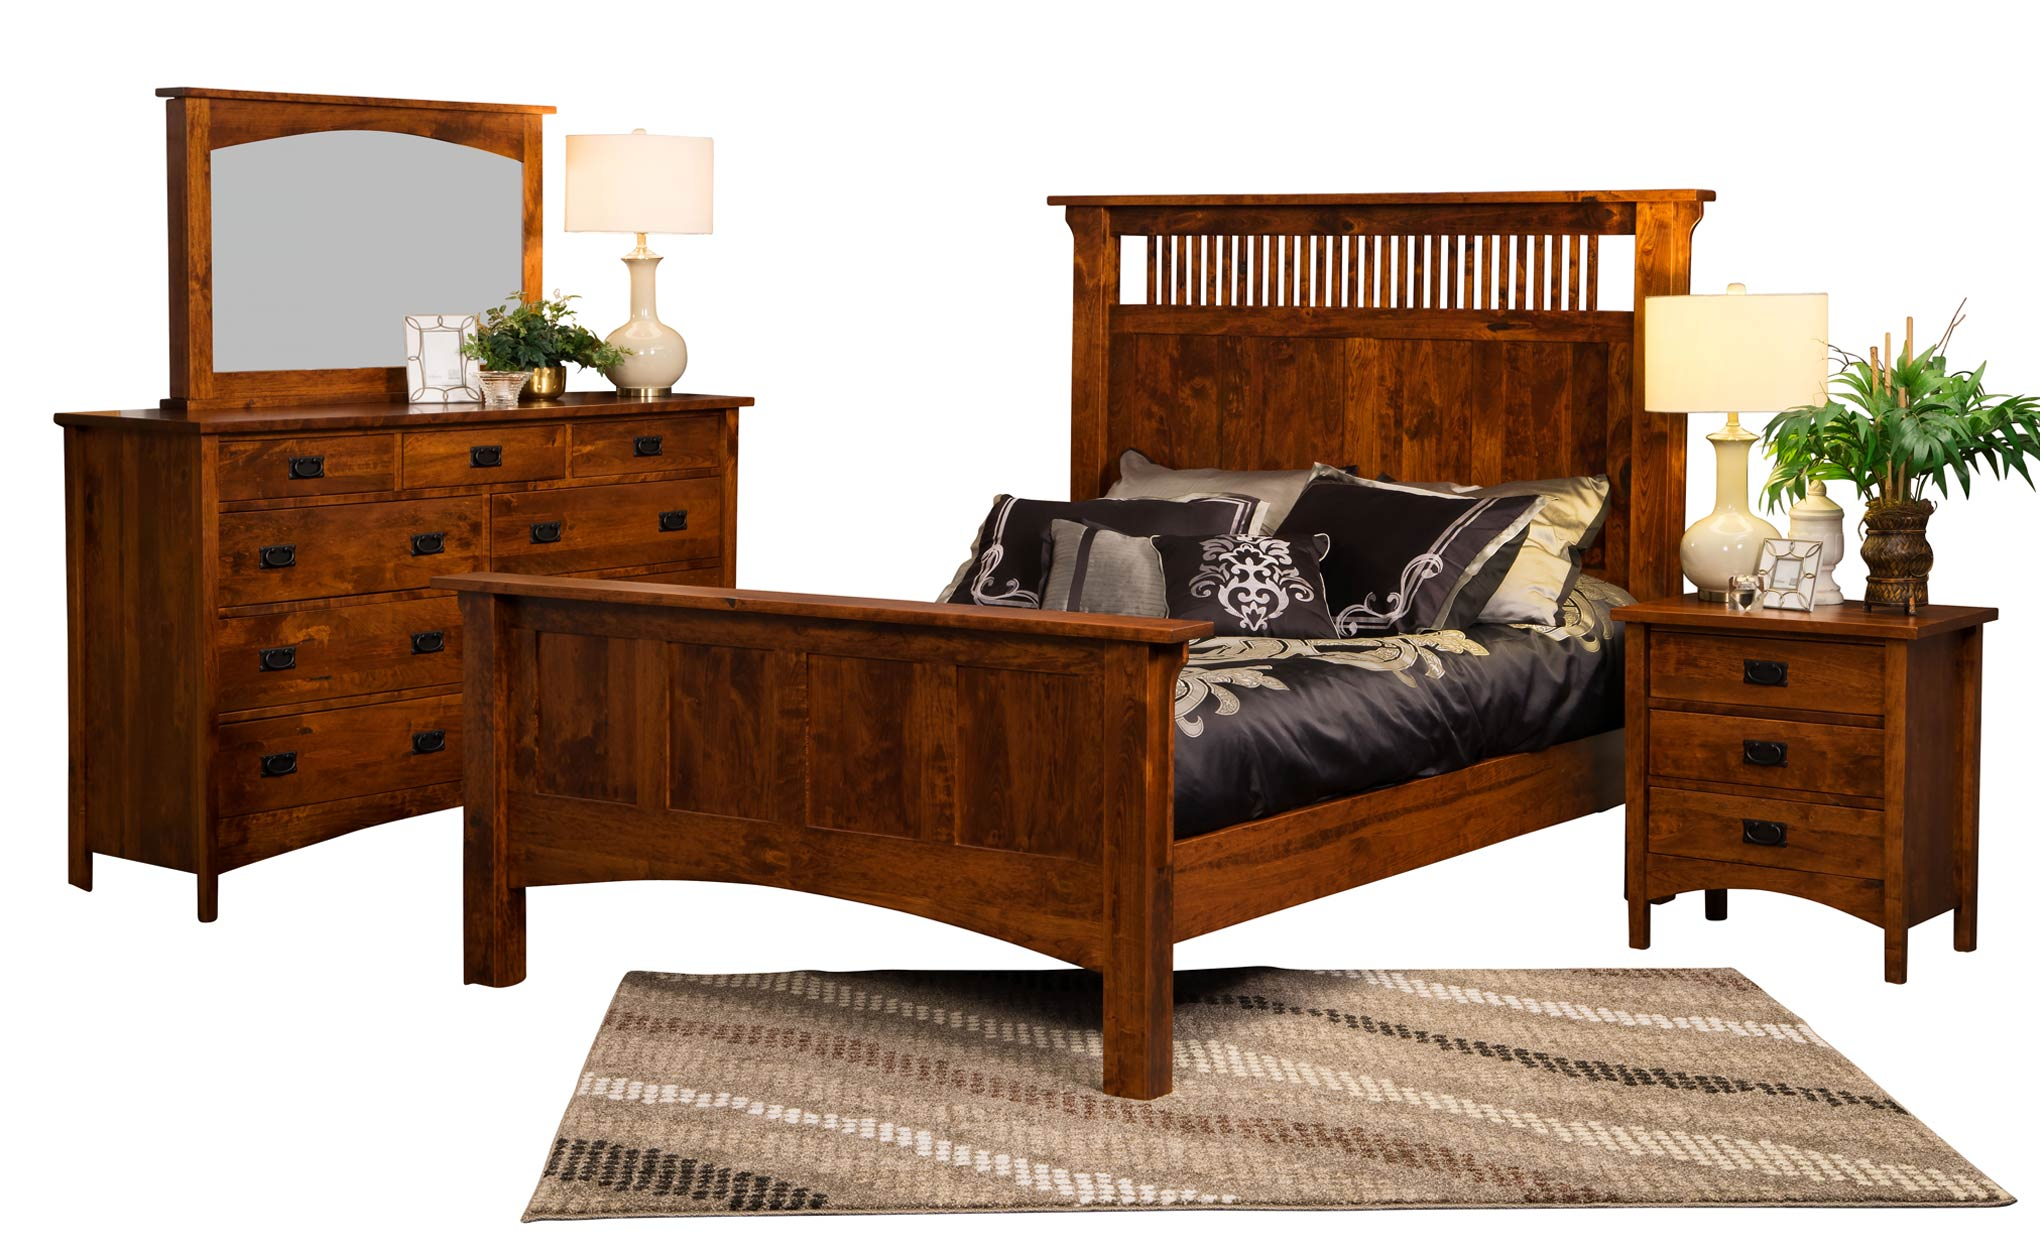 Arts and crafts dresser amish direct furniture for Arts and crafts bedroom